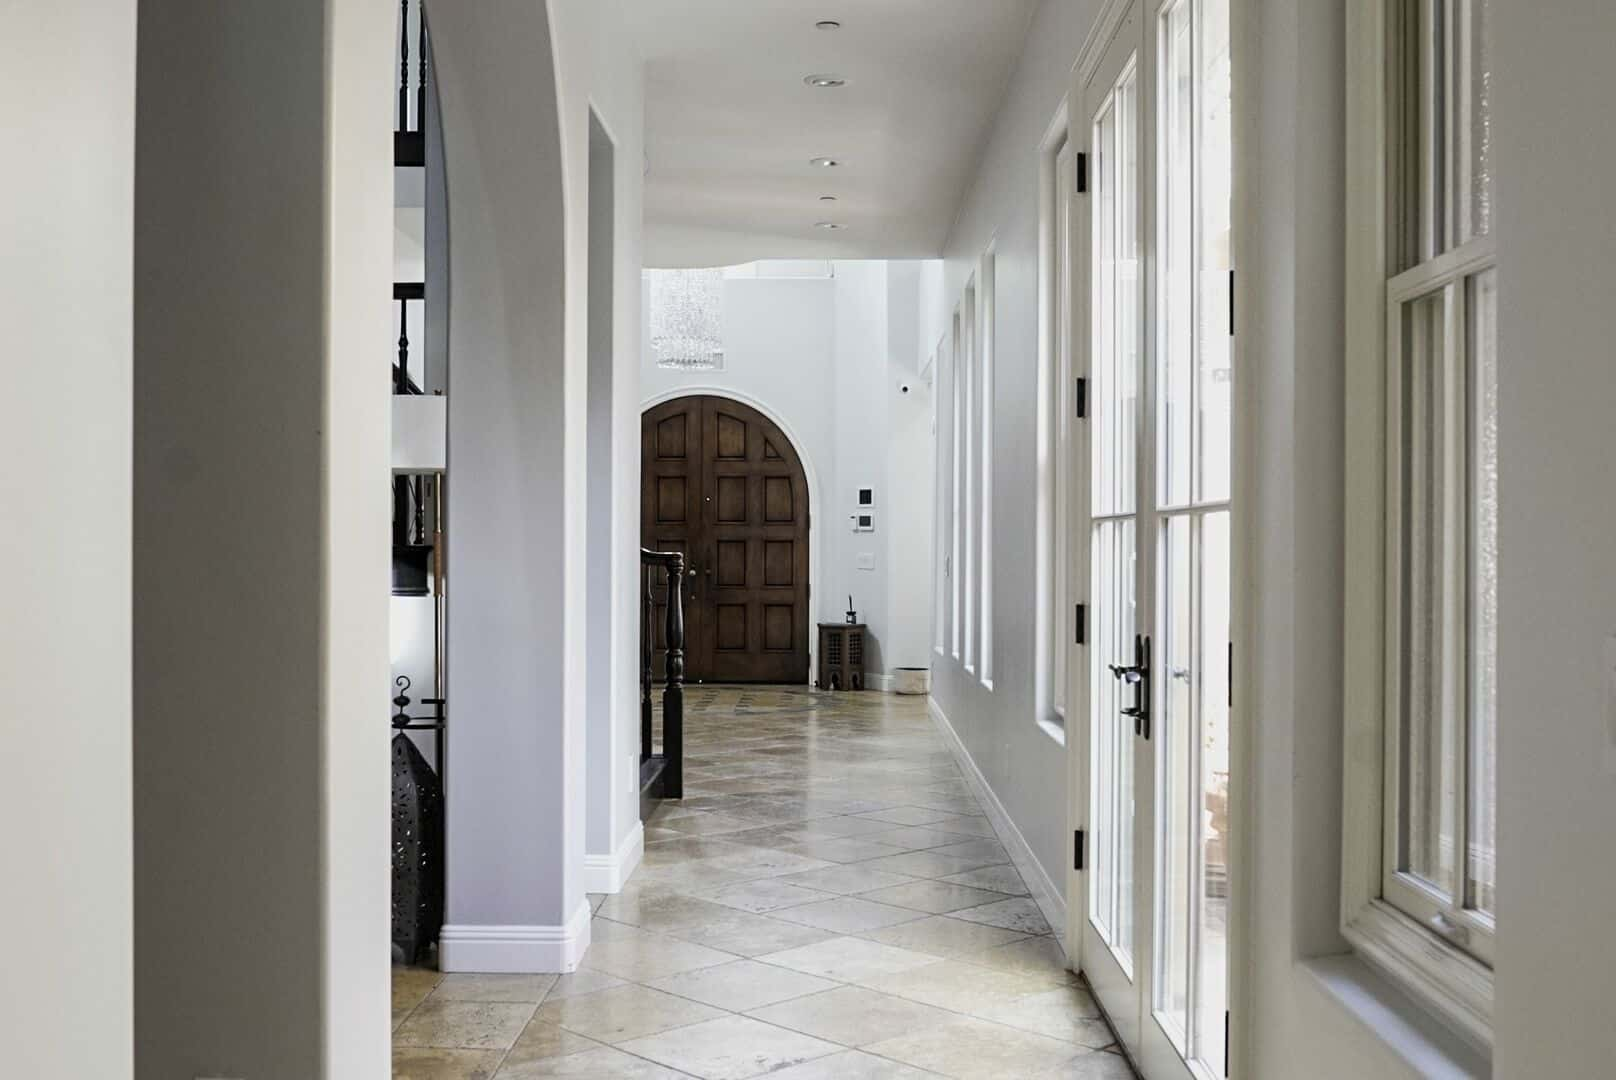 This is the other look of the home's entry, showcasing the doorway and white walls. Images courtesy of Toptenrealestatedeals.com.